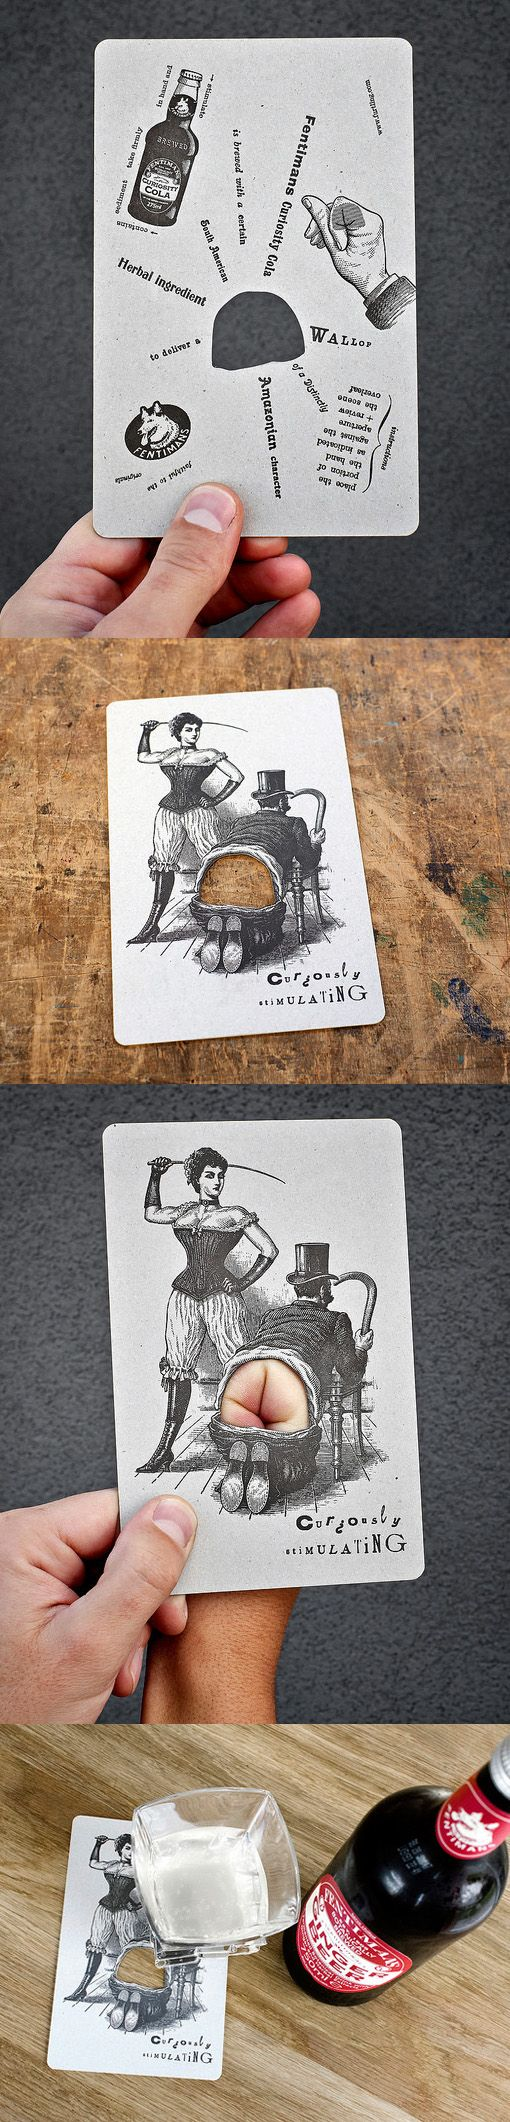 Hilariously Interactive Vintage Style Letterpress Beer Coaster Business Card